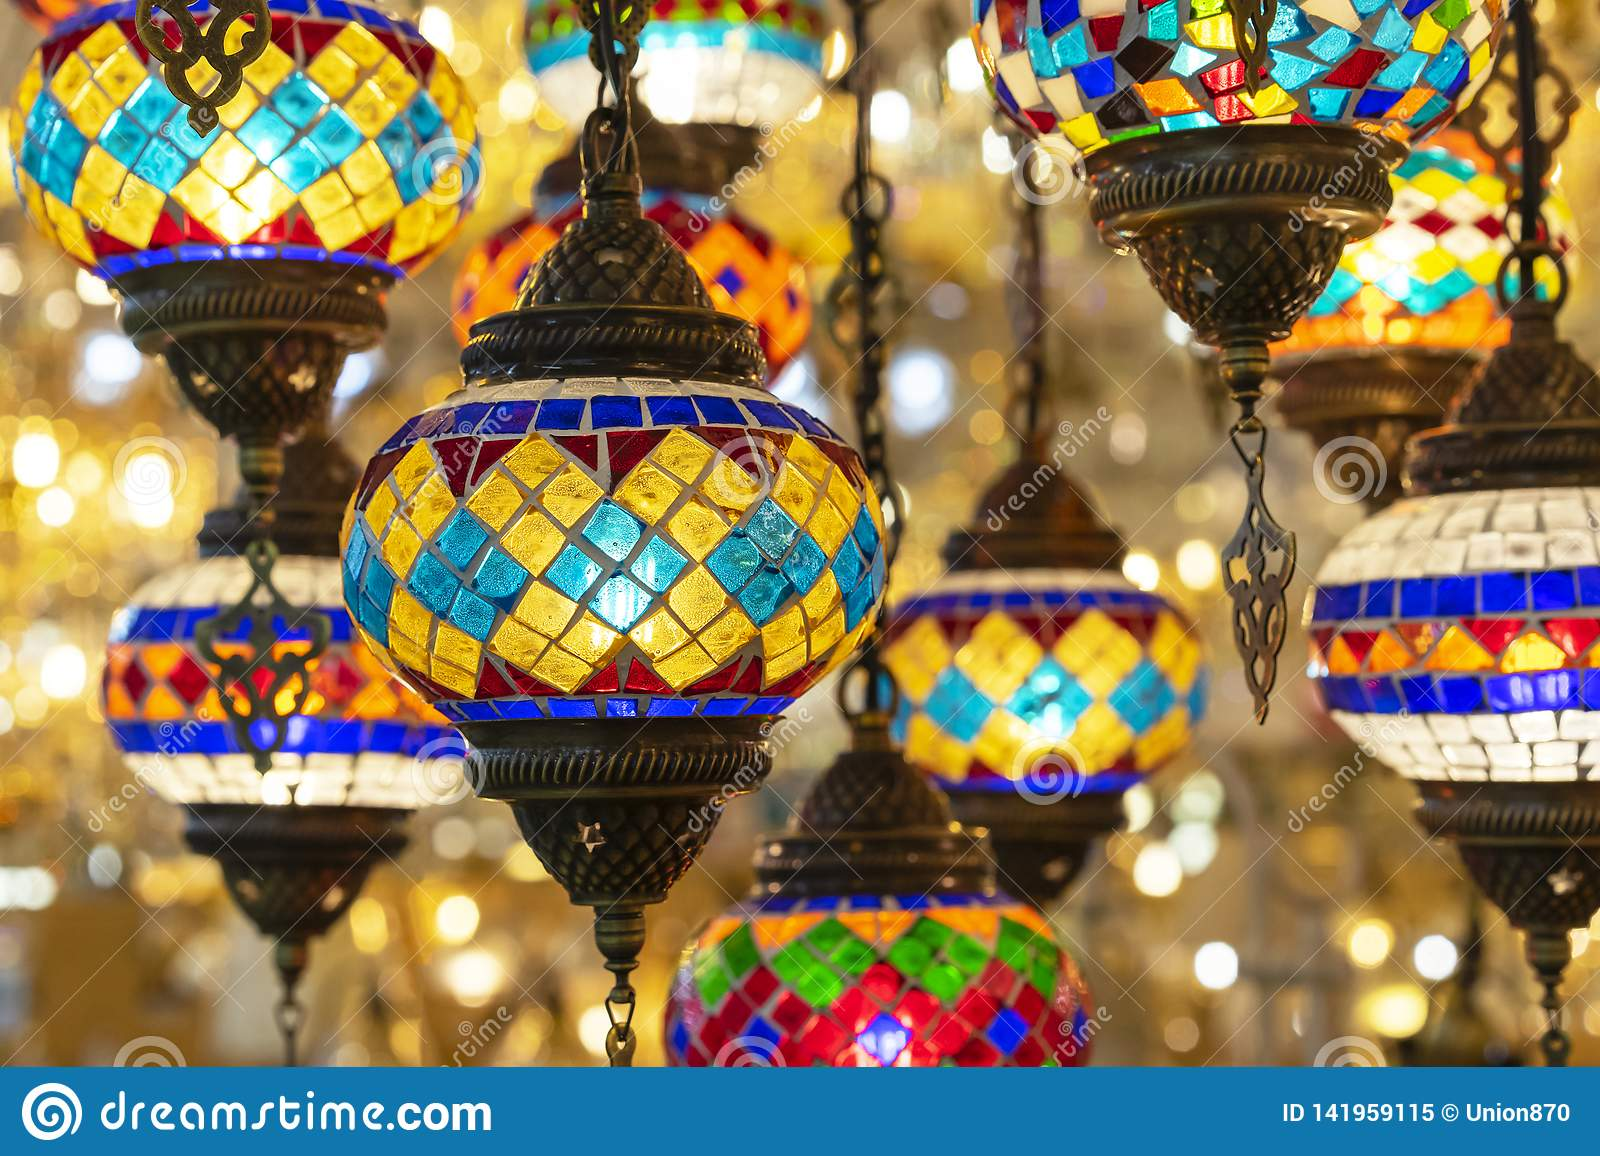 Oriental lamps from a multi-colored mosaic in the shop window